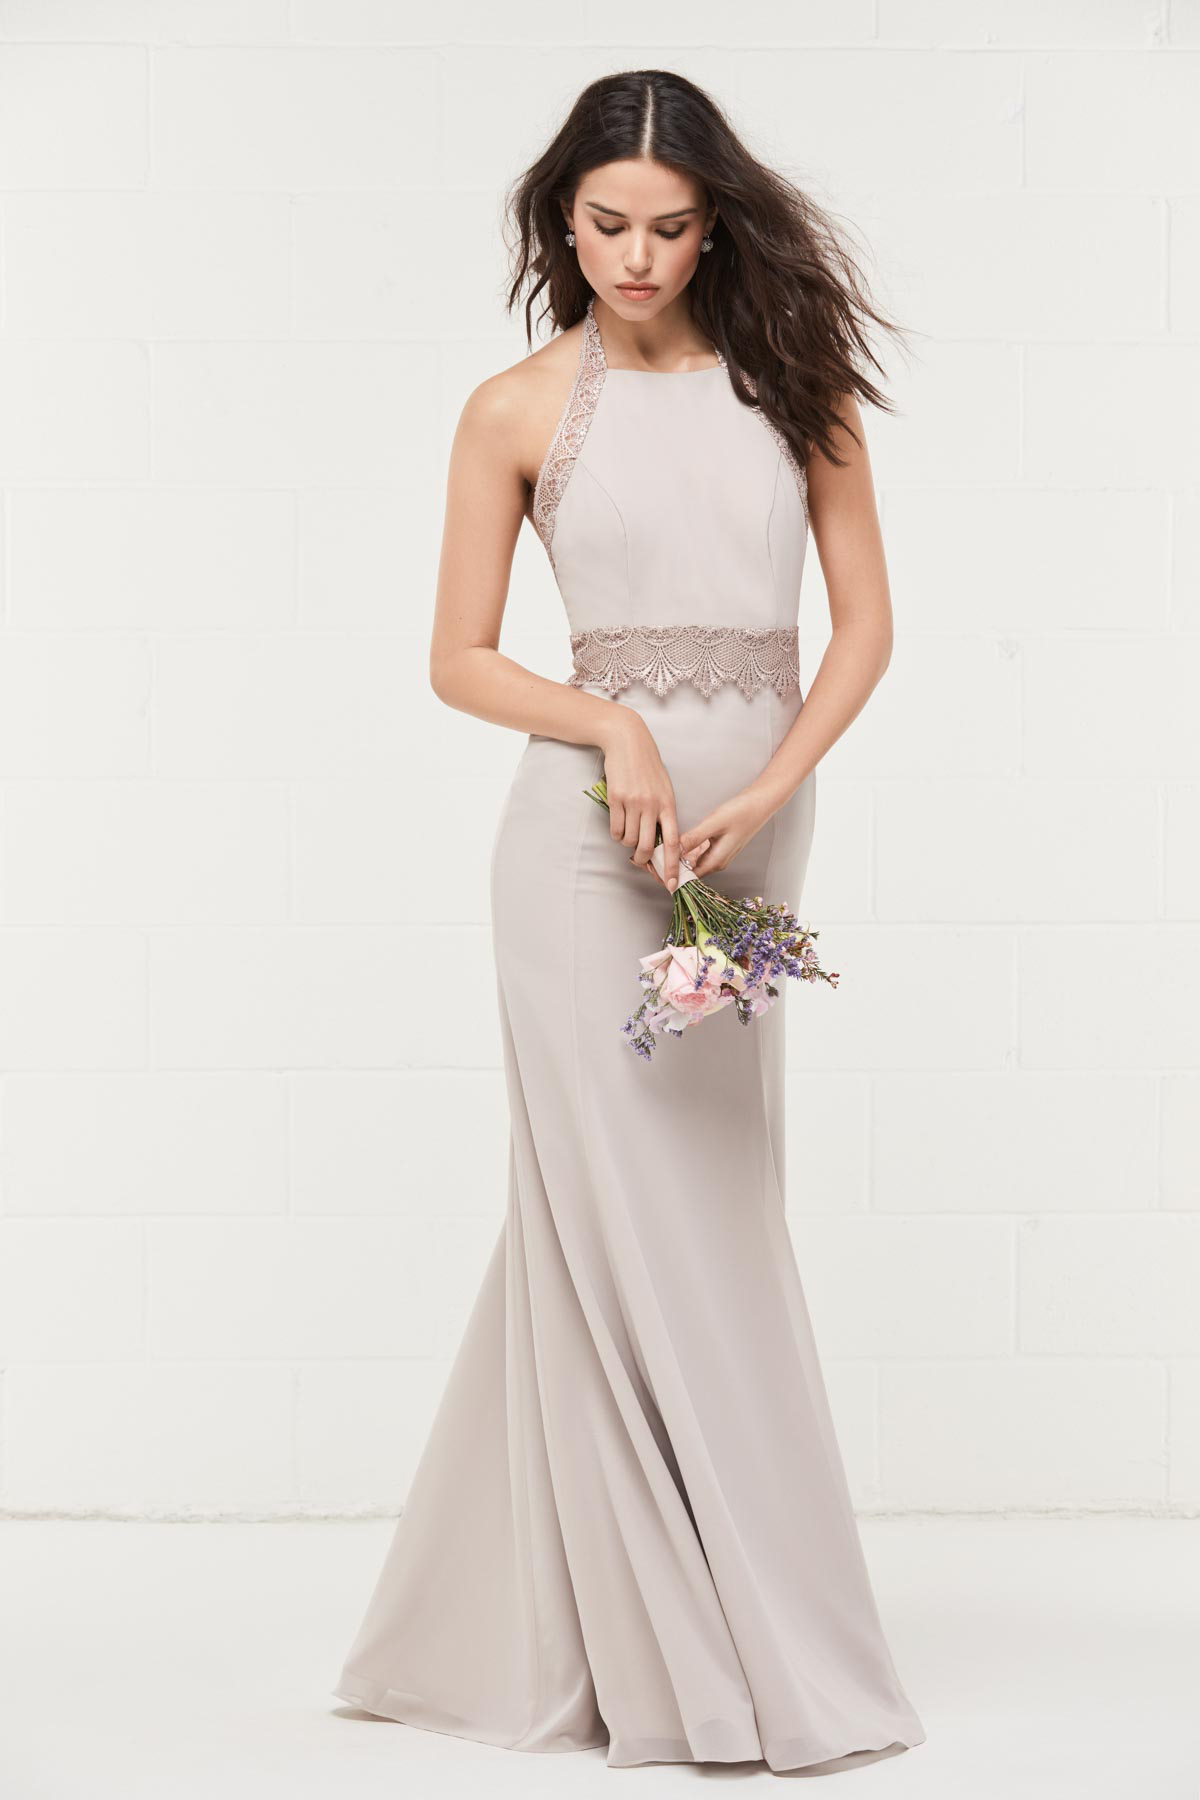 405 Bridesmaids Dress By Watters